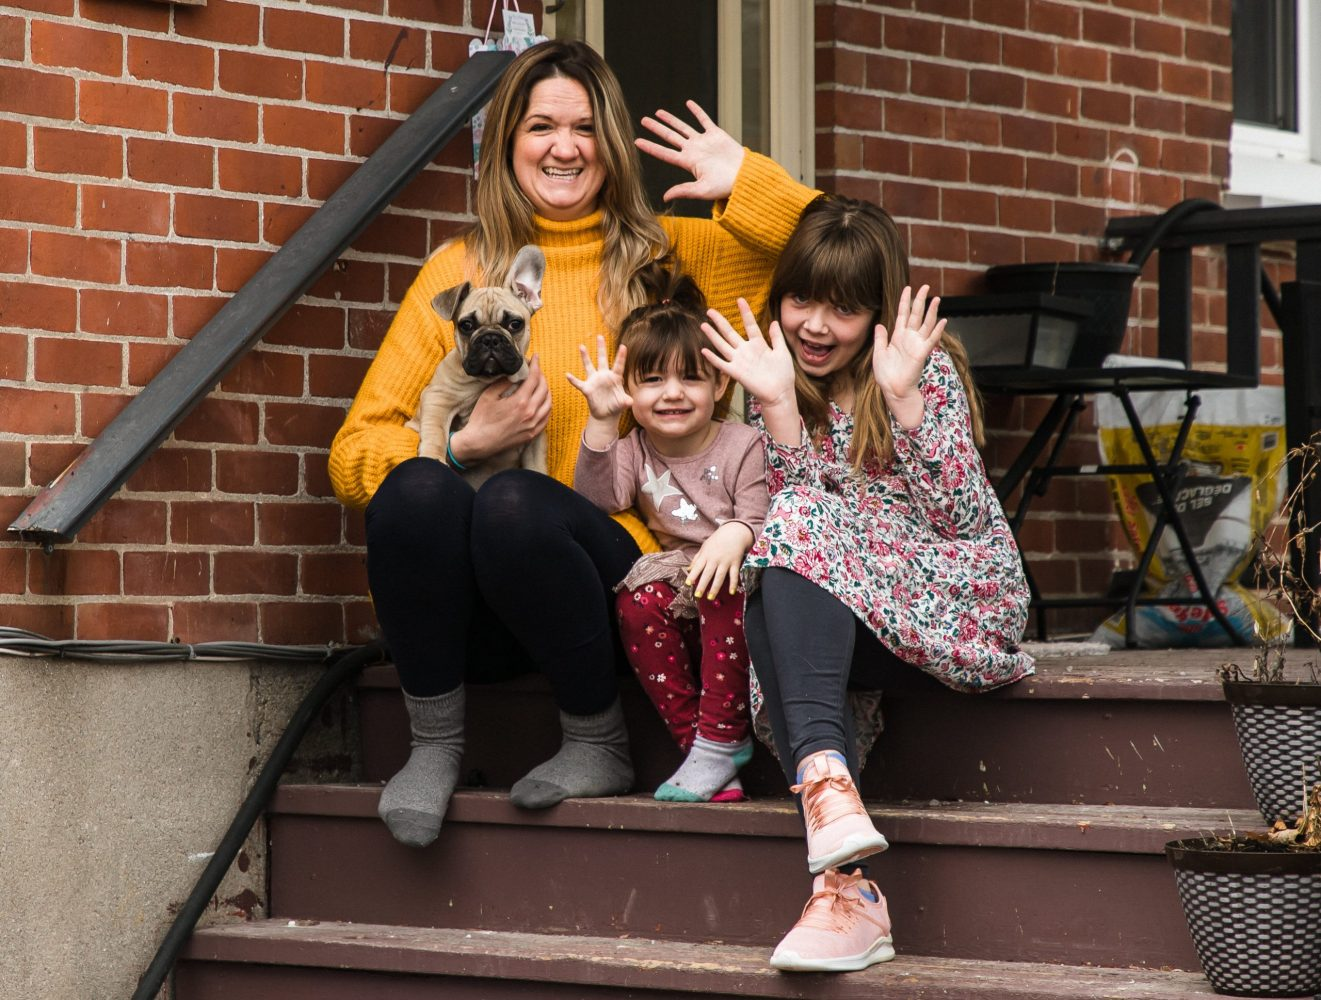 mom and daughters sitting on porch in city, waving at family photographer for family session